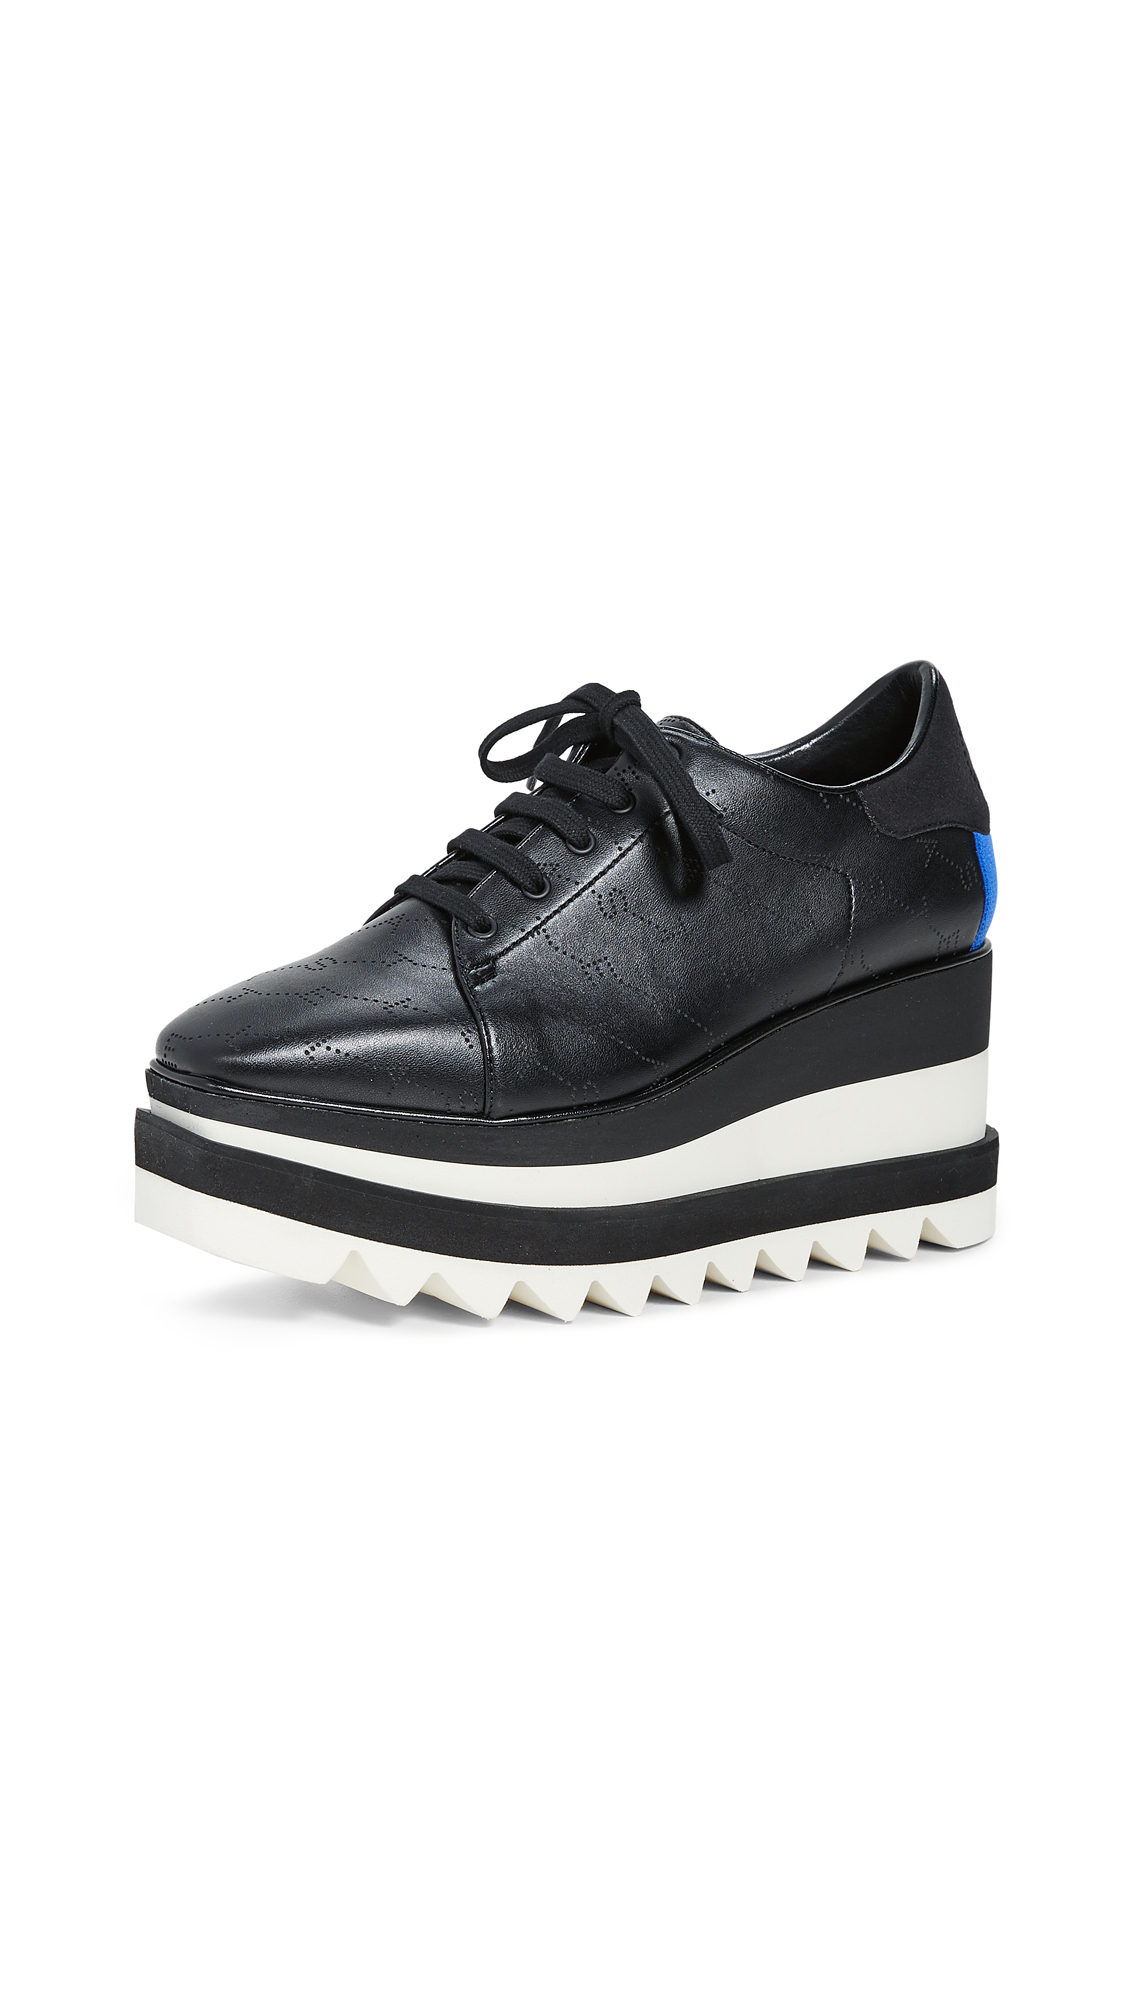 Buy Stella McCartney Sneakelyse Lace Up Shoes online, shop Stella McCartney